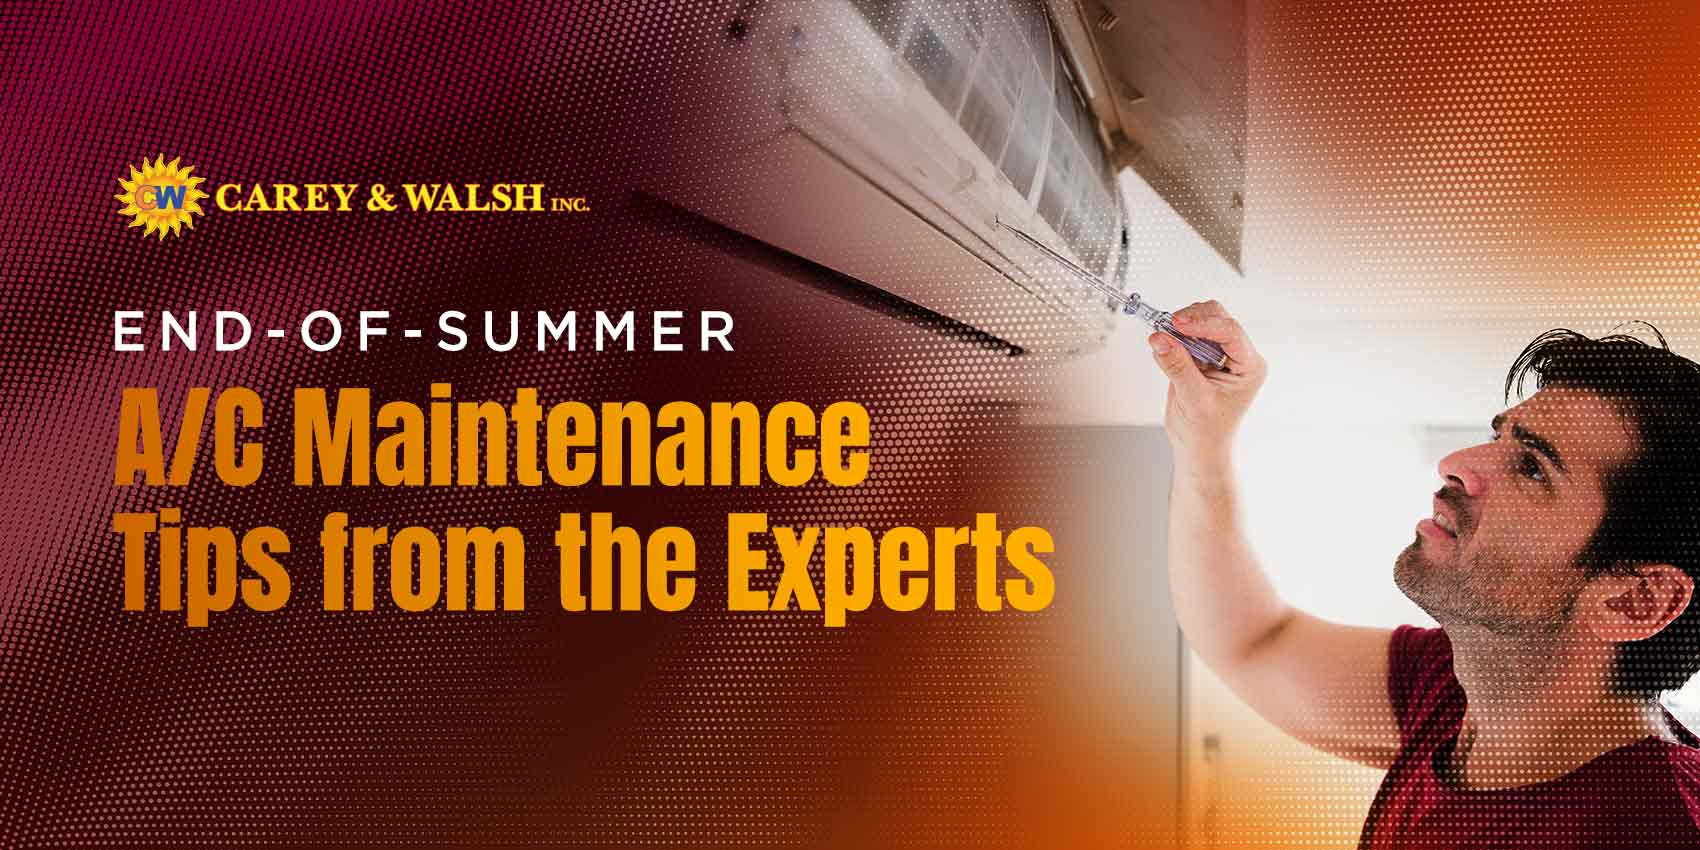 End-of-Summer A/C Maintenance Tips from the Experts